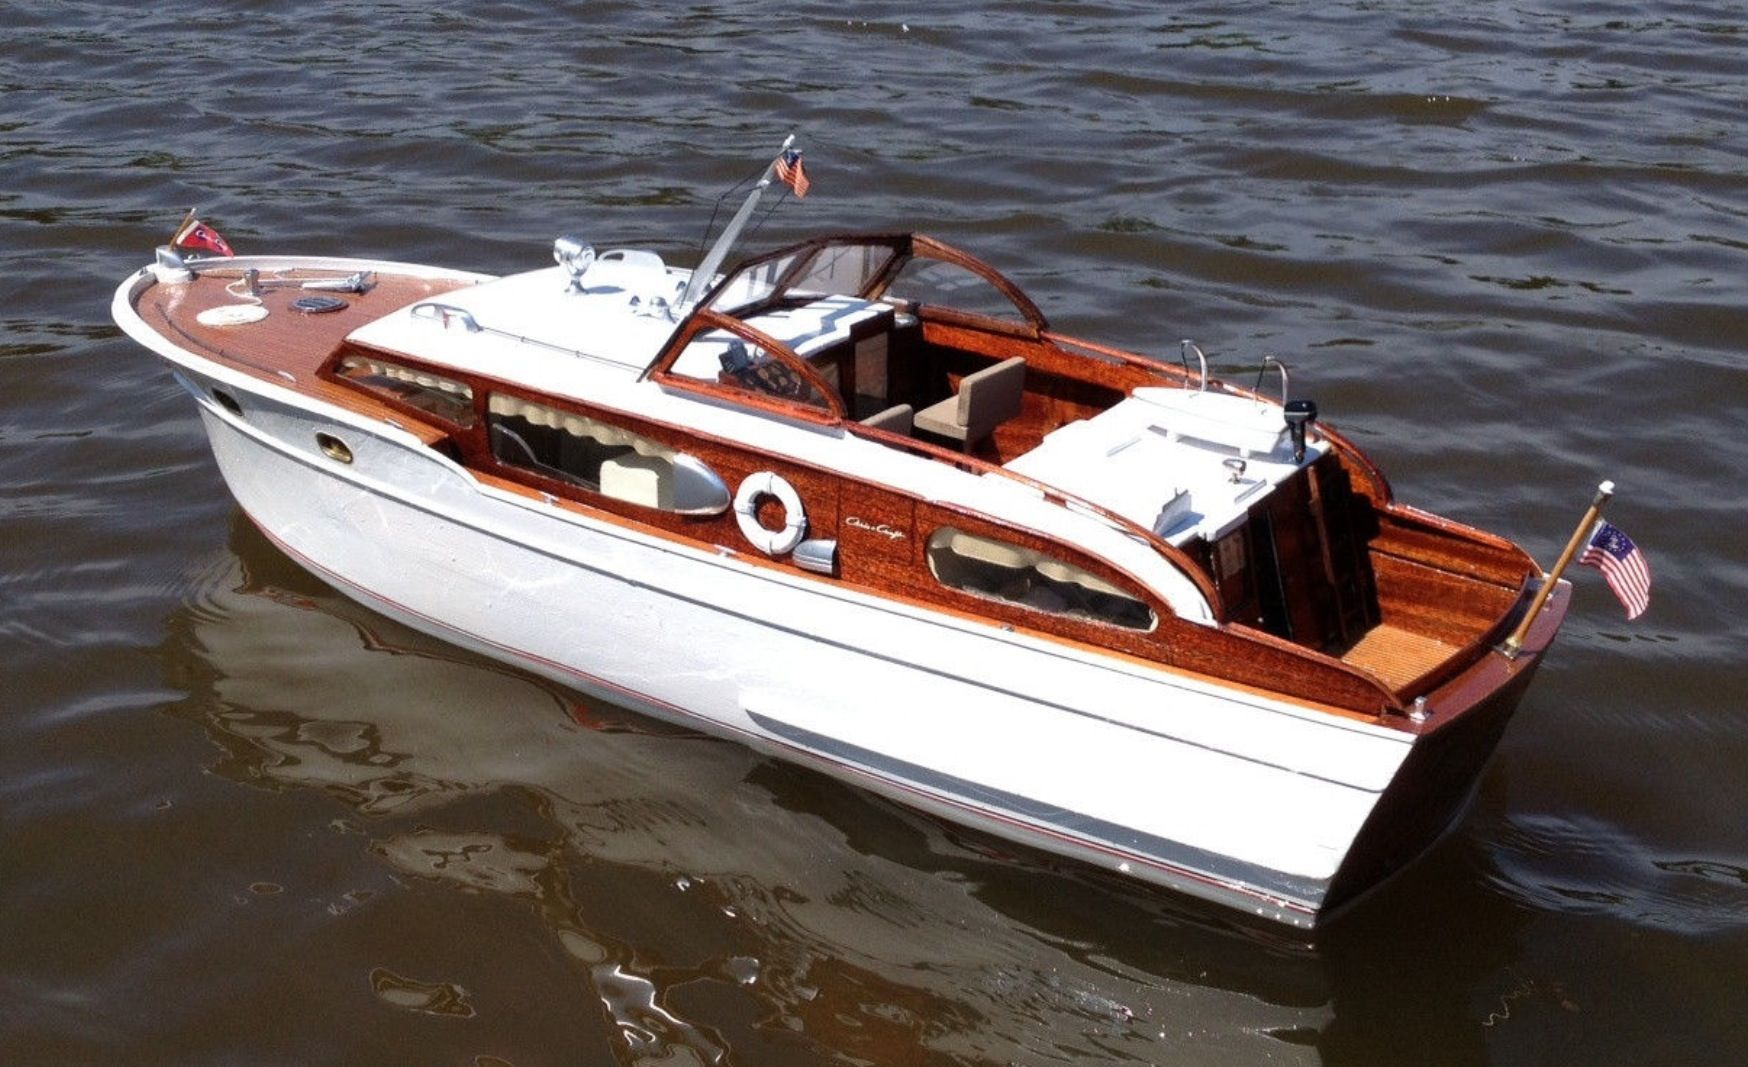 Chris craft model boat plans - Chris Craft Model Boat Chris Craft Model Boat